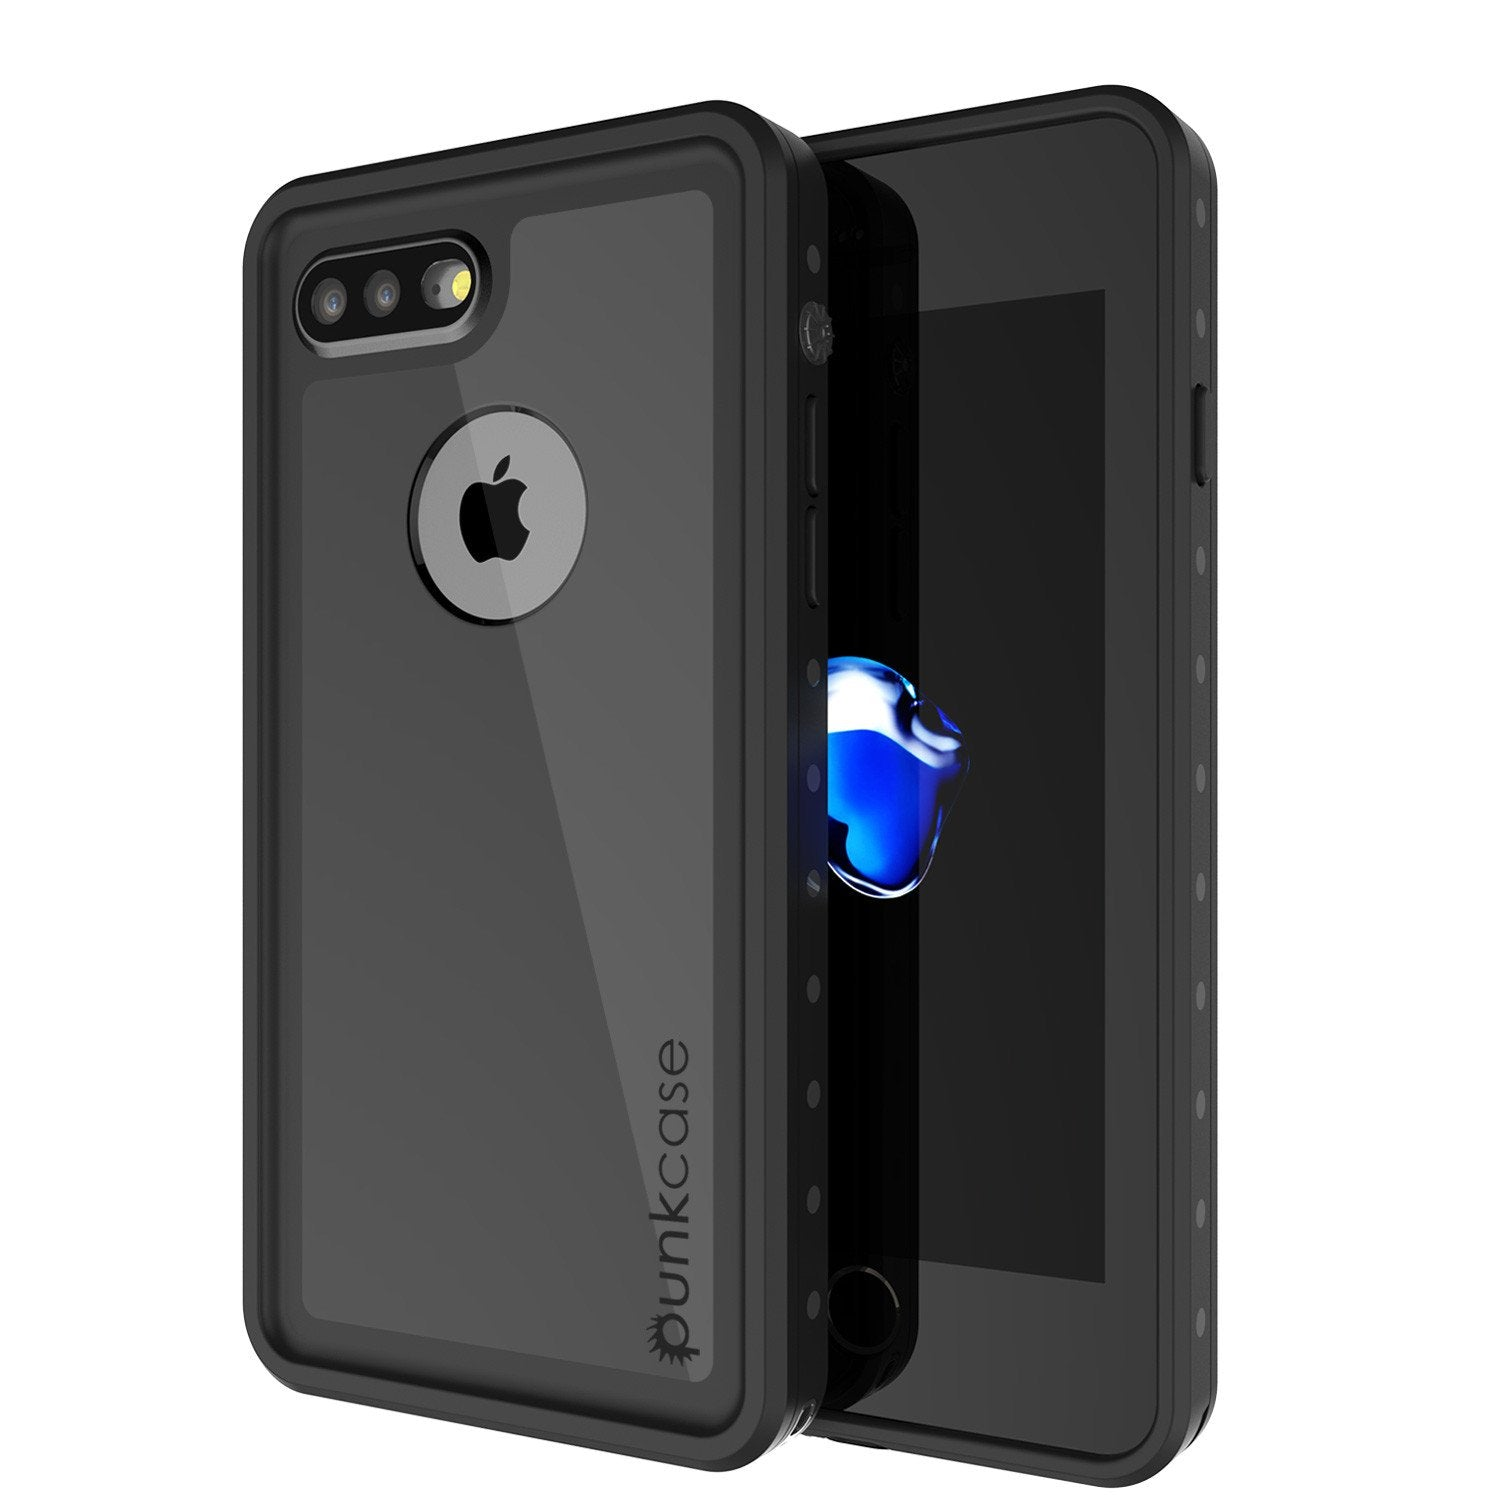 iPhone 8 Plus Waterproof IP68 Case, Punkcase [Black] [StudStar Series] [Slim Fit] [Dirtproof]